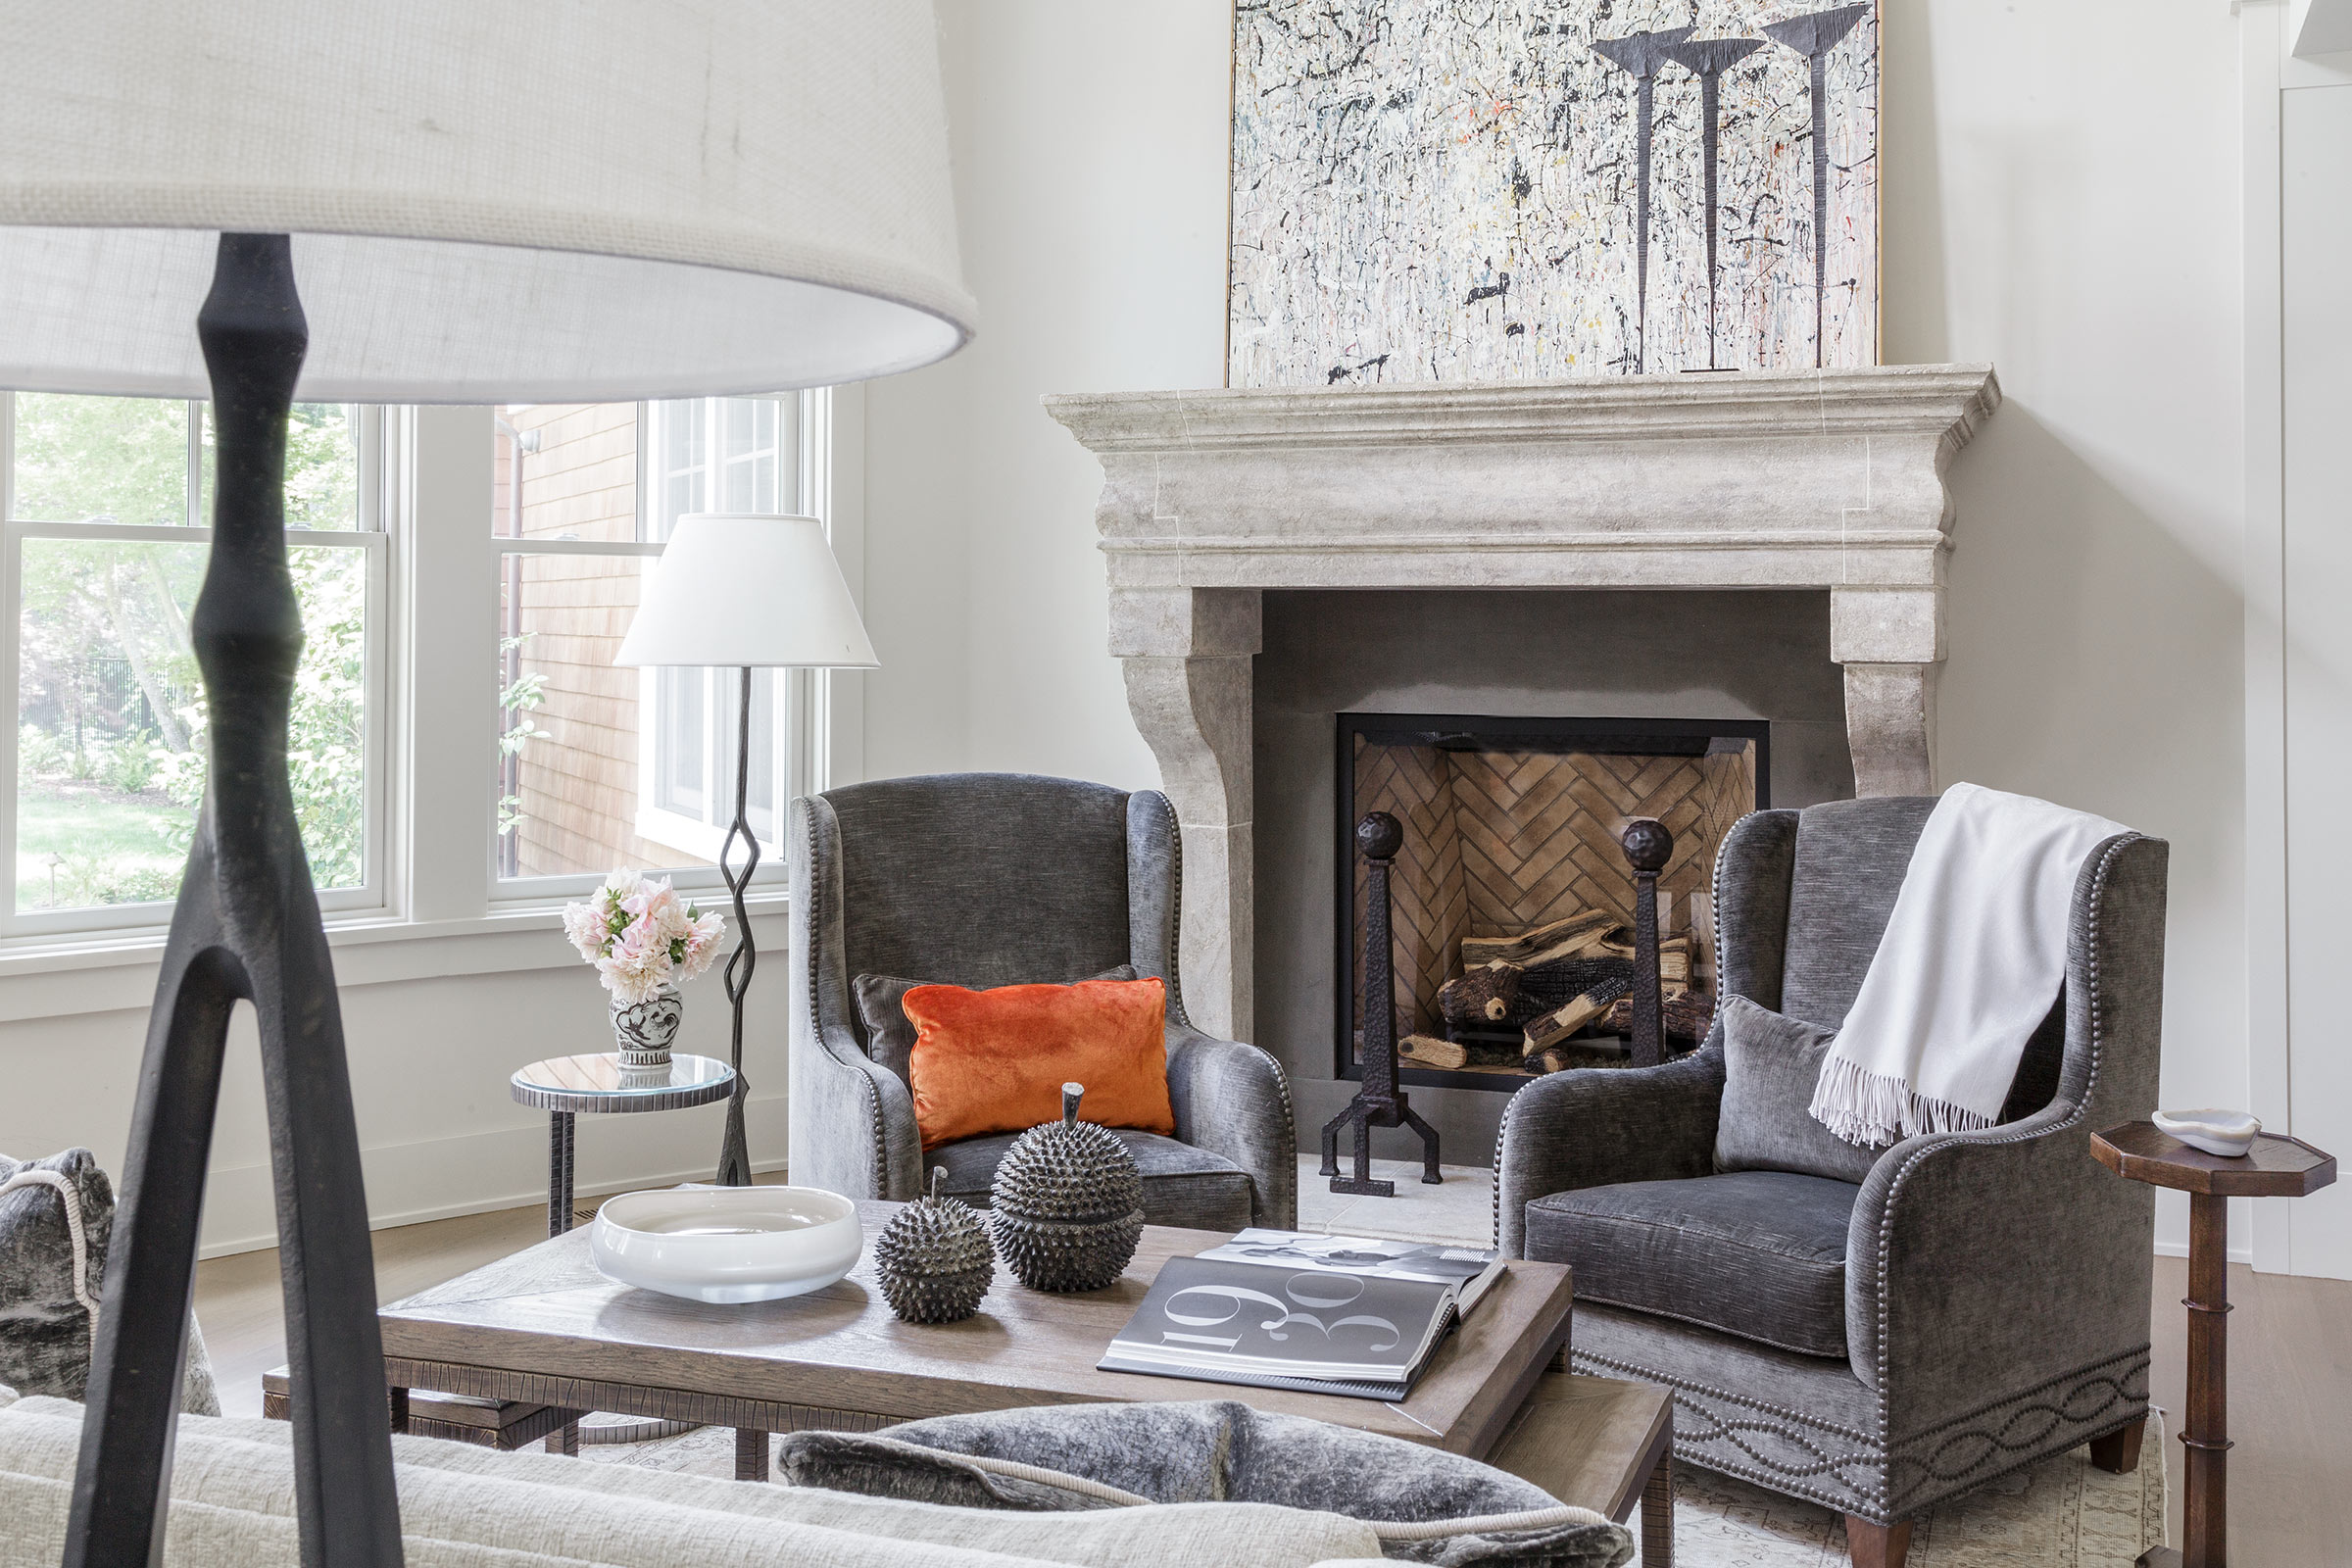 Diablo Shingle Style Living Room with Fireplace Buestad Construction